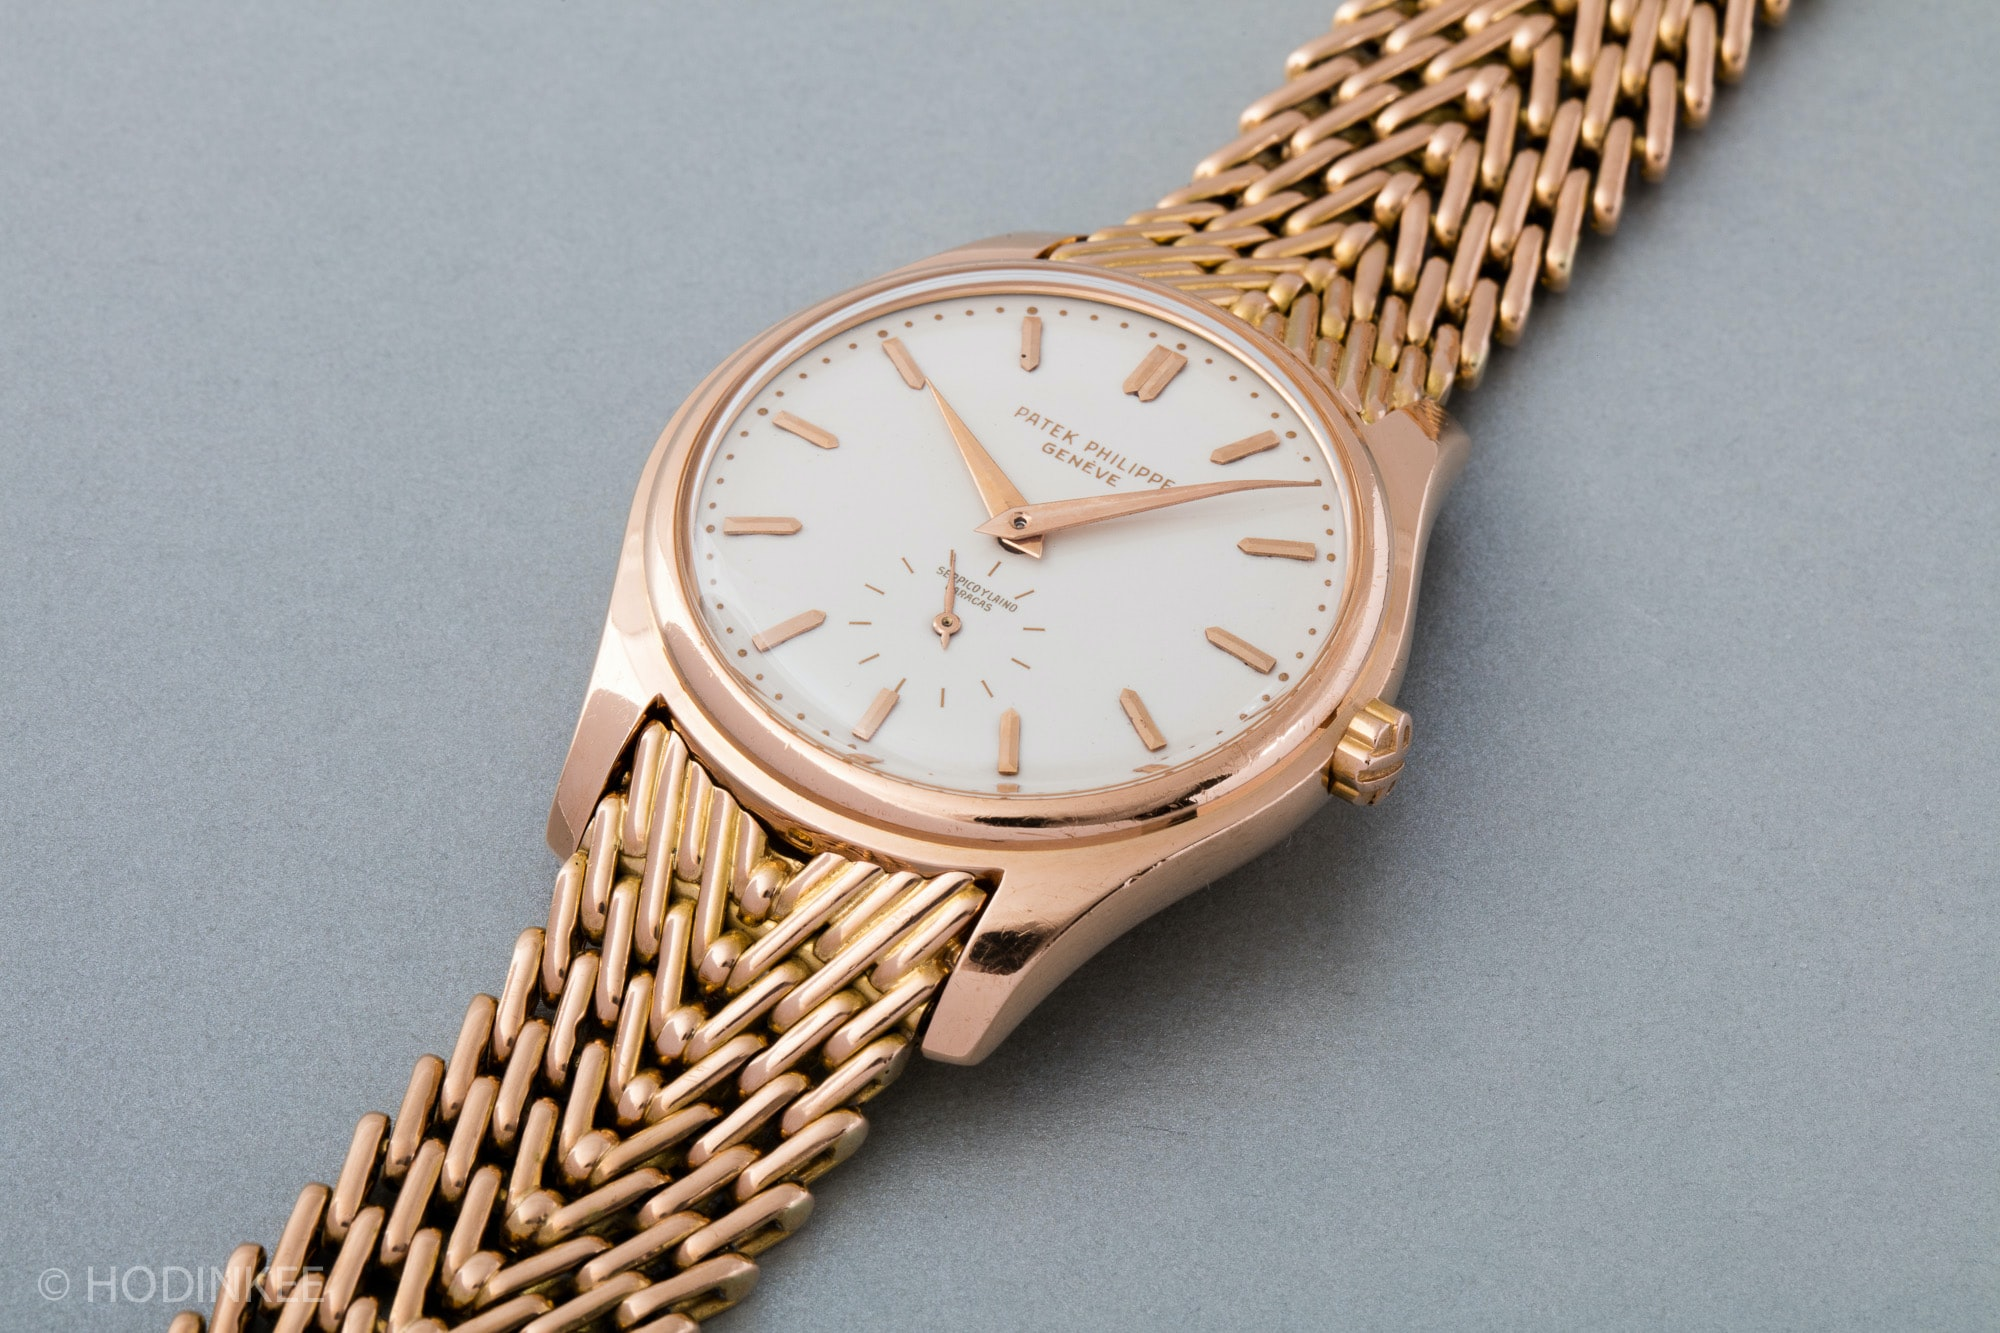 In-Depth: The Patek Philippe 2526, And Why It's A Watch To Pay Attention To In-Depth: The Patek Philippe 2526, And Why It's A Watch To Pay Attention To 2526caliber 5